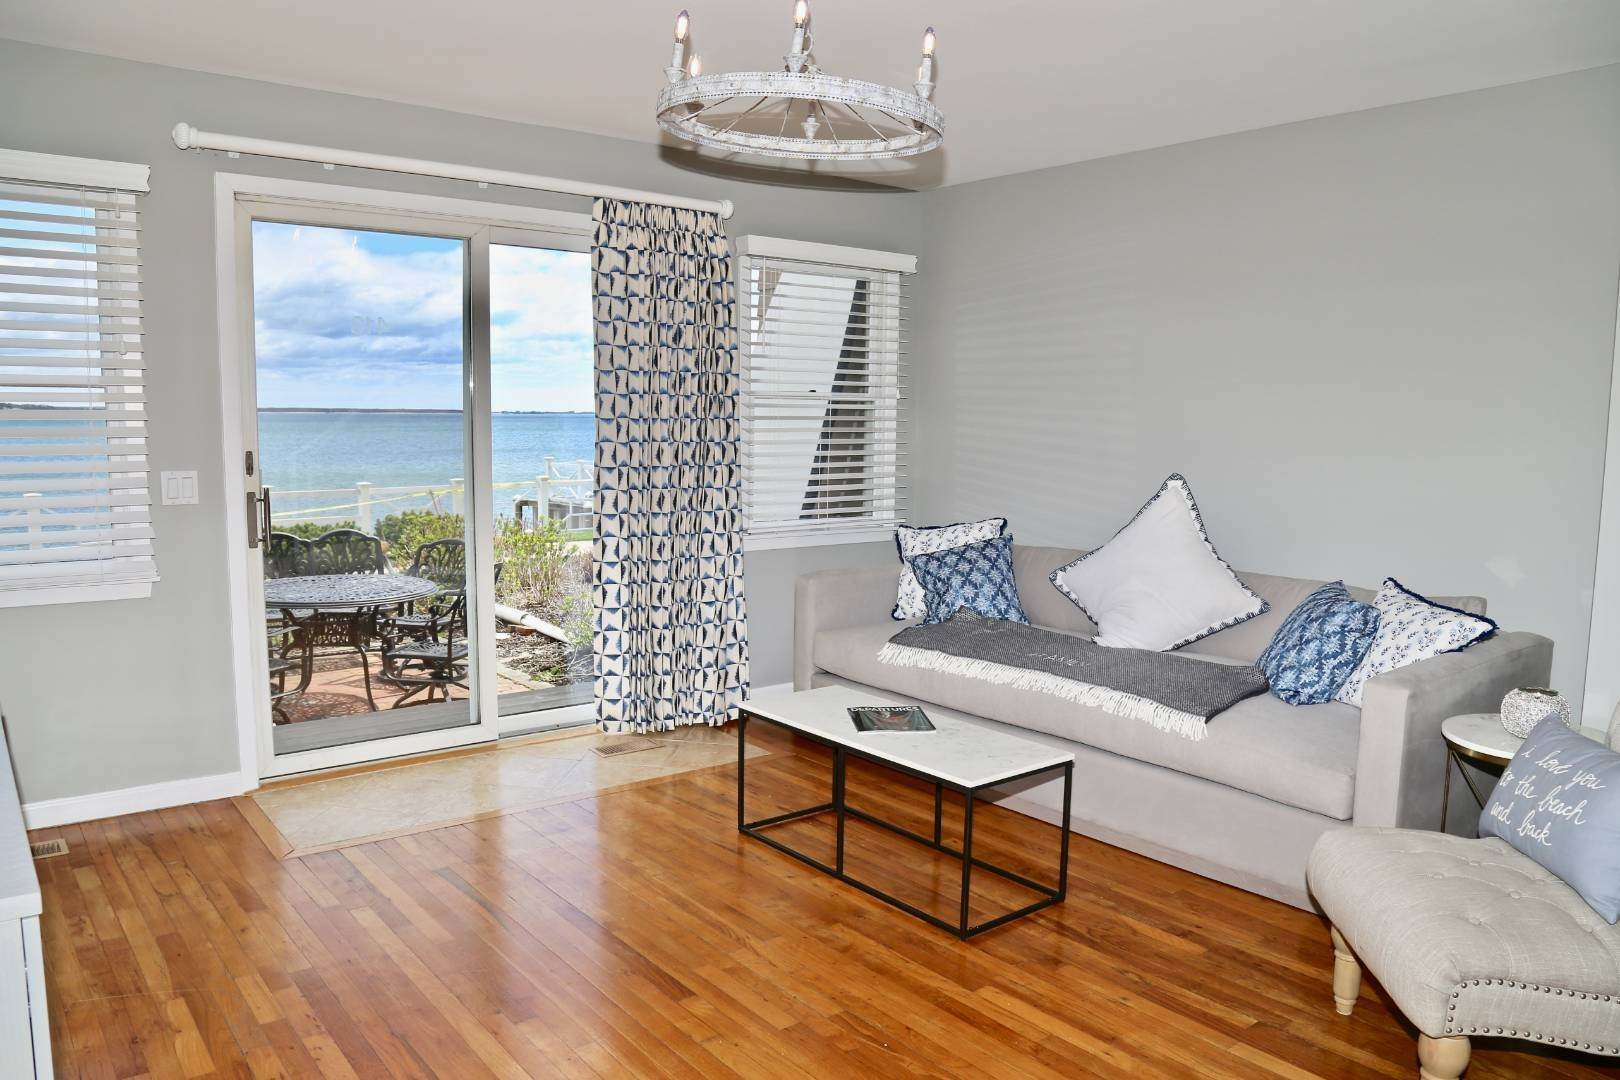 10. Condominiums at Bay Front Two Bedroom Condo Hampton Bays, NY 11946